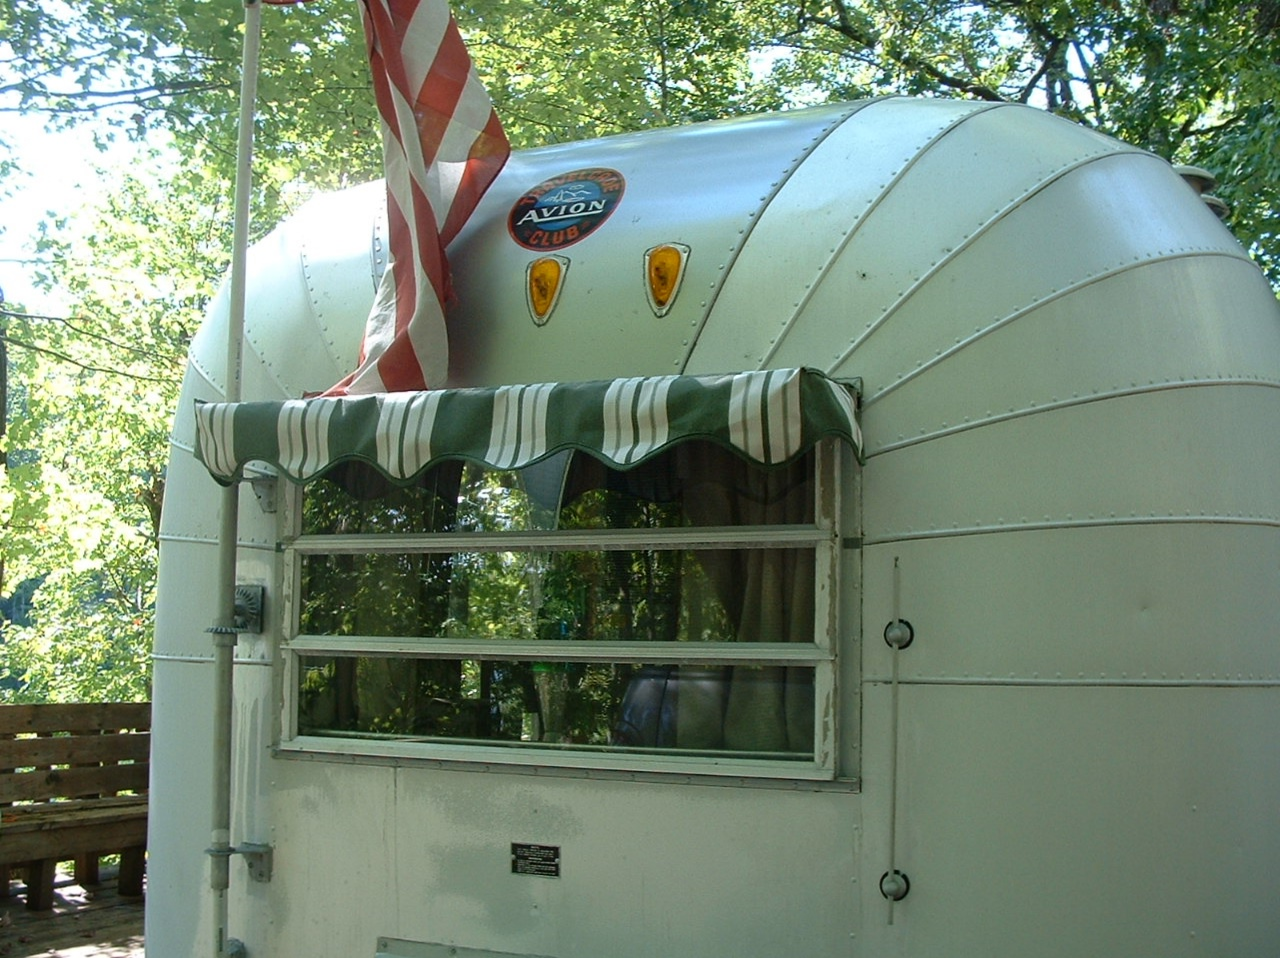 Vintage Awnings Avion With Small Decorative Window Awning